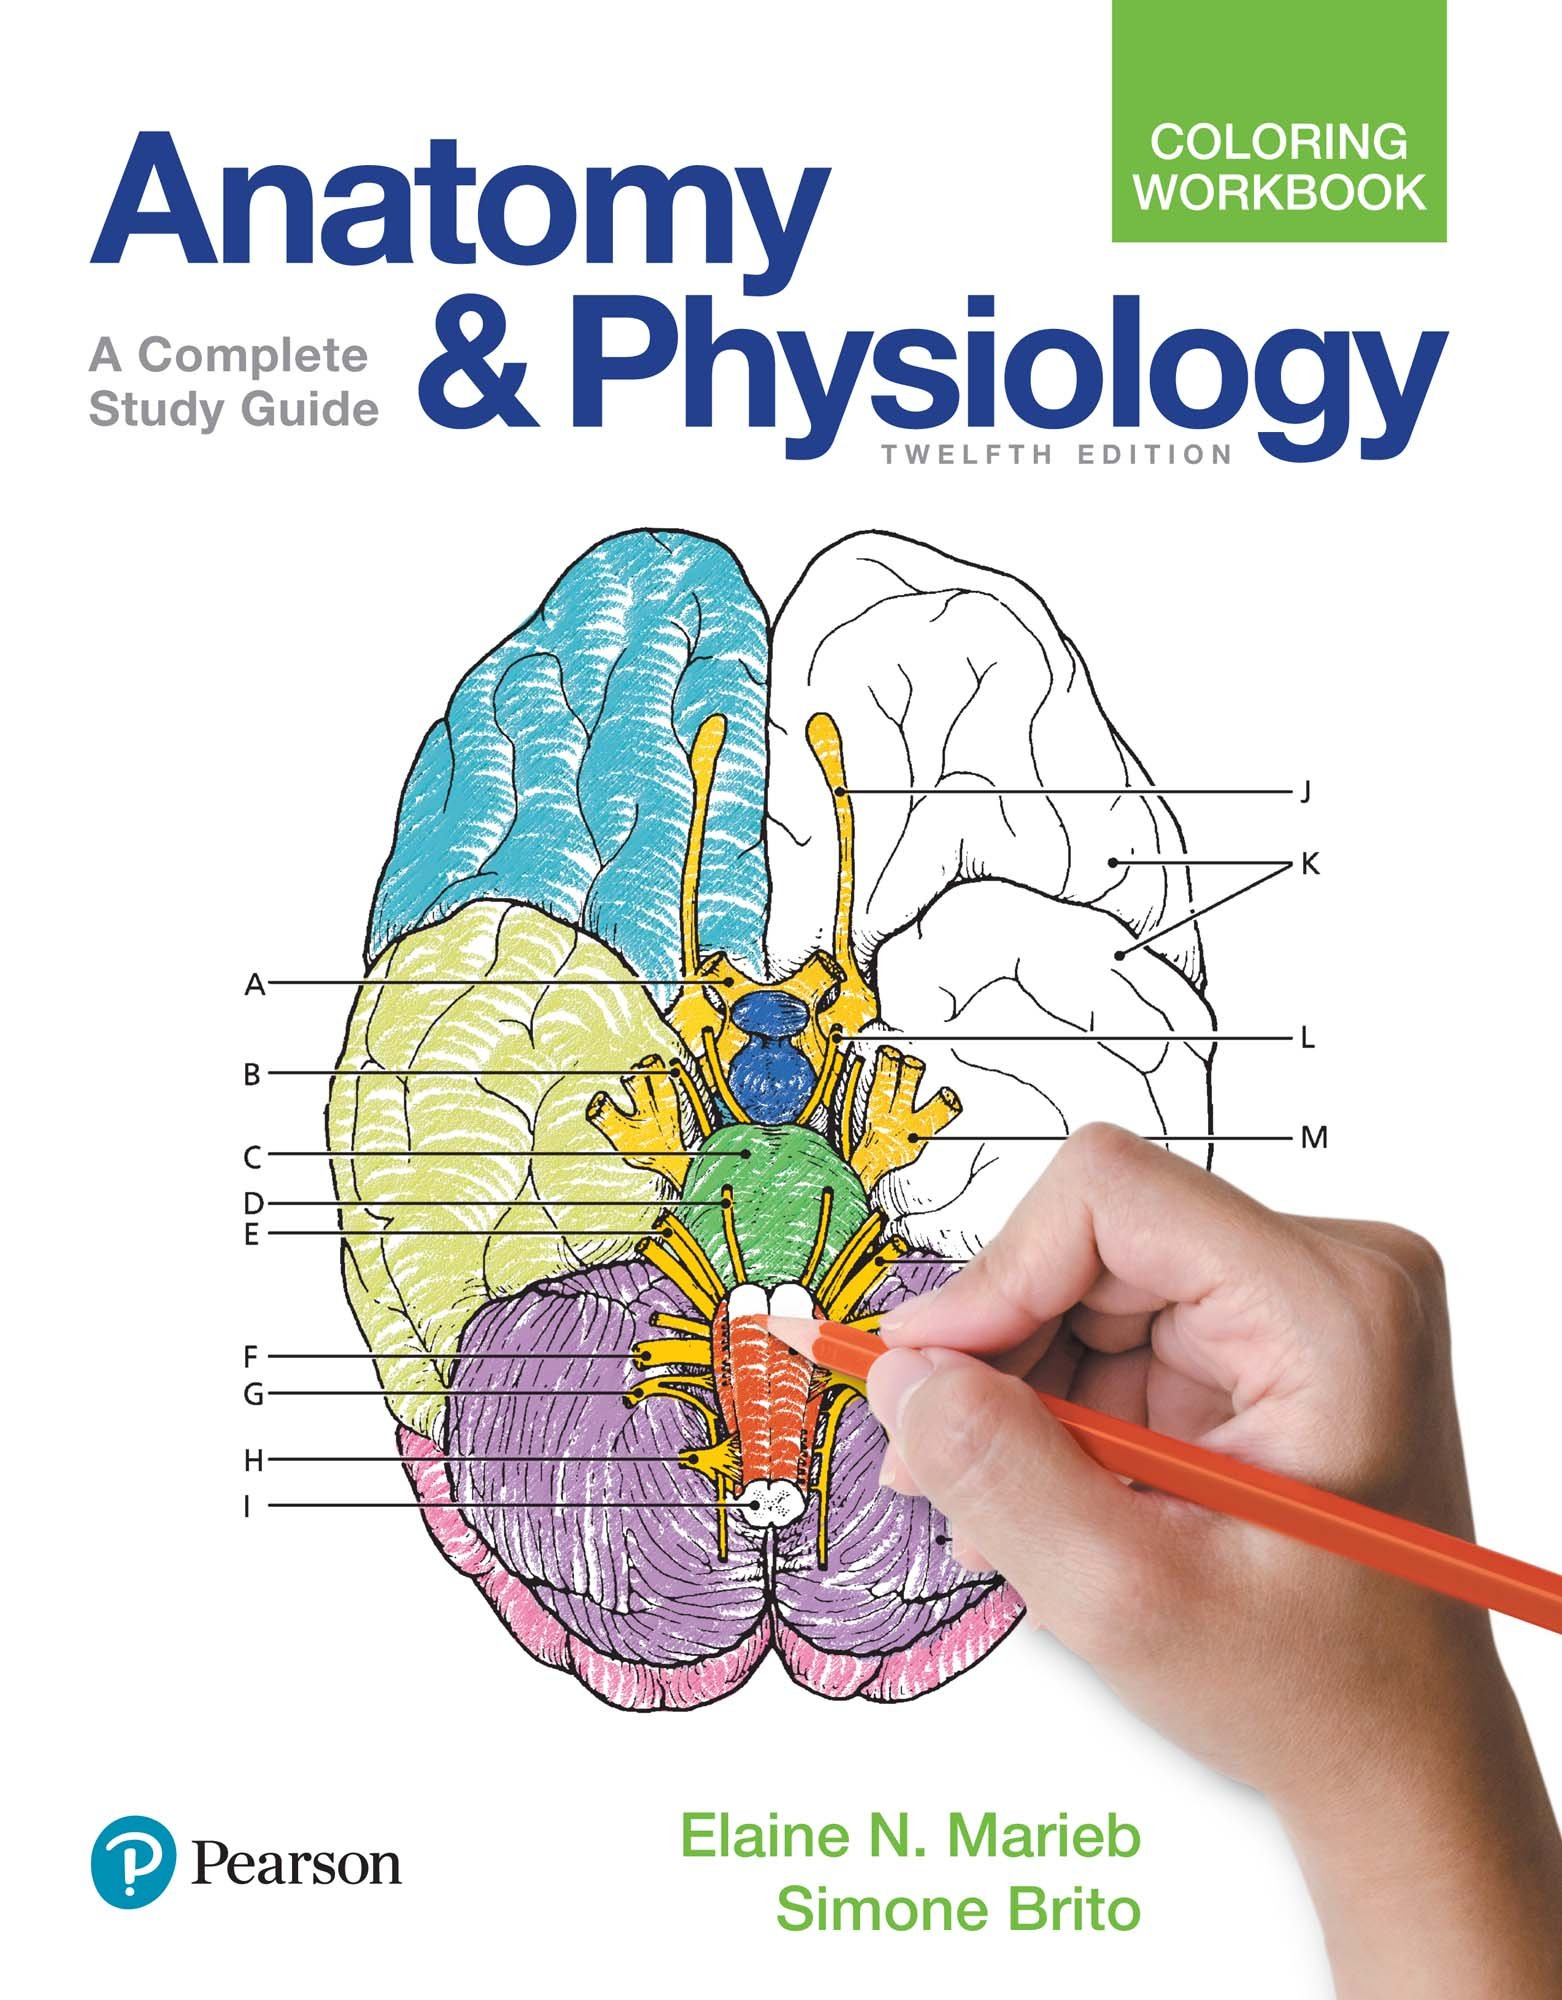 - Anatomy And Physiology Coloring Workbook (2-downloads) 12, N